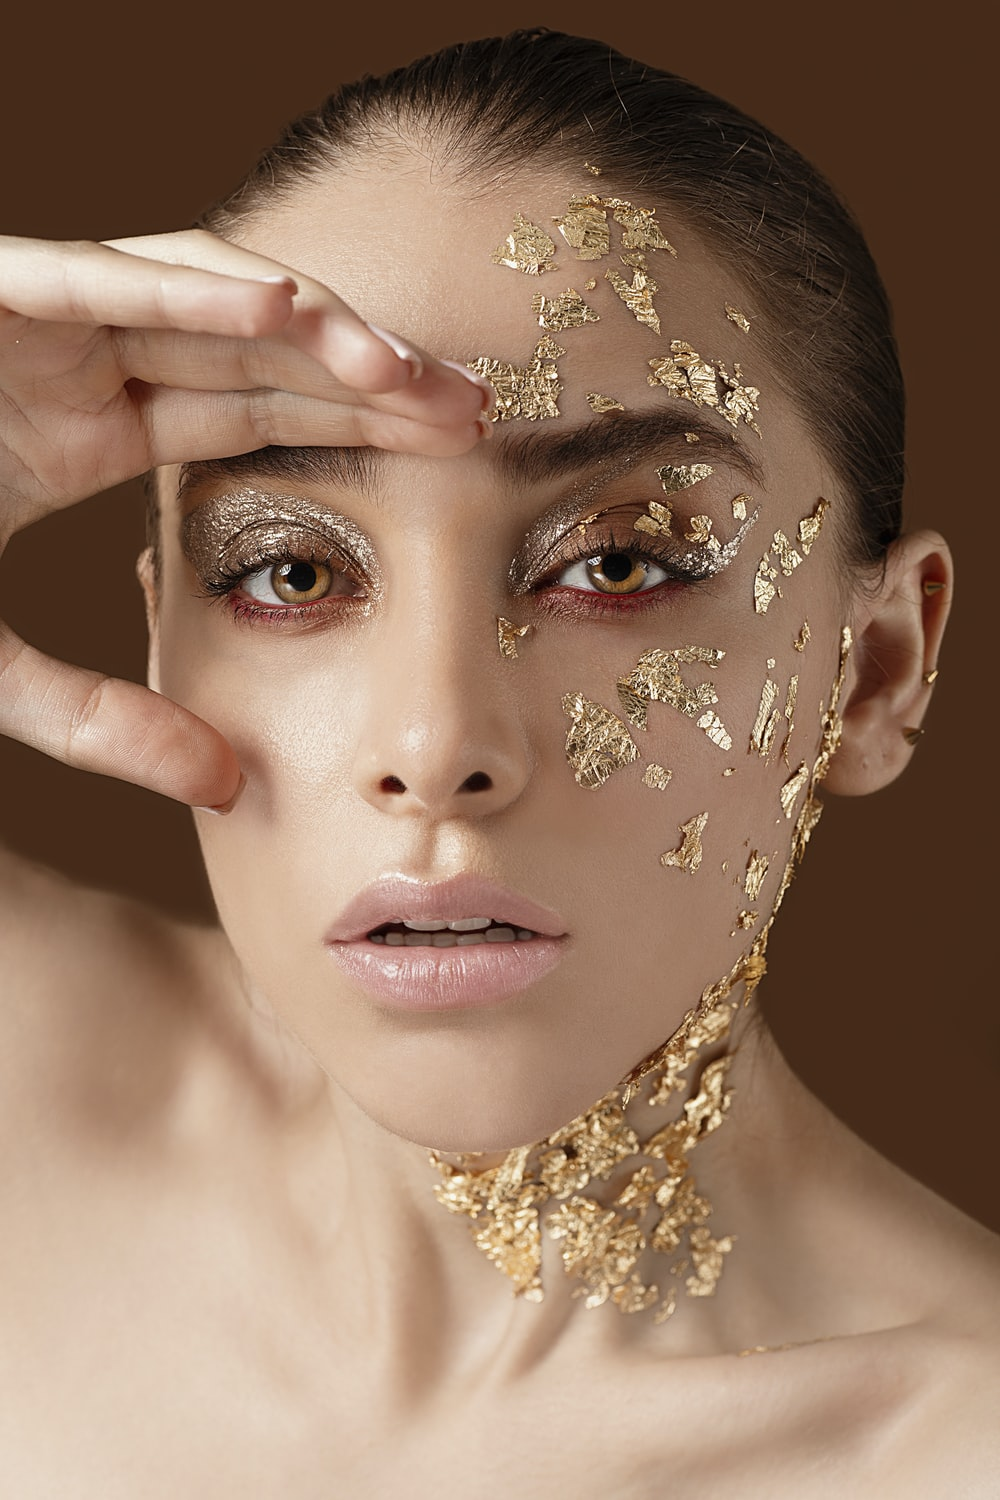 woman with gold floral face paint